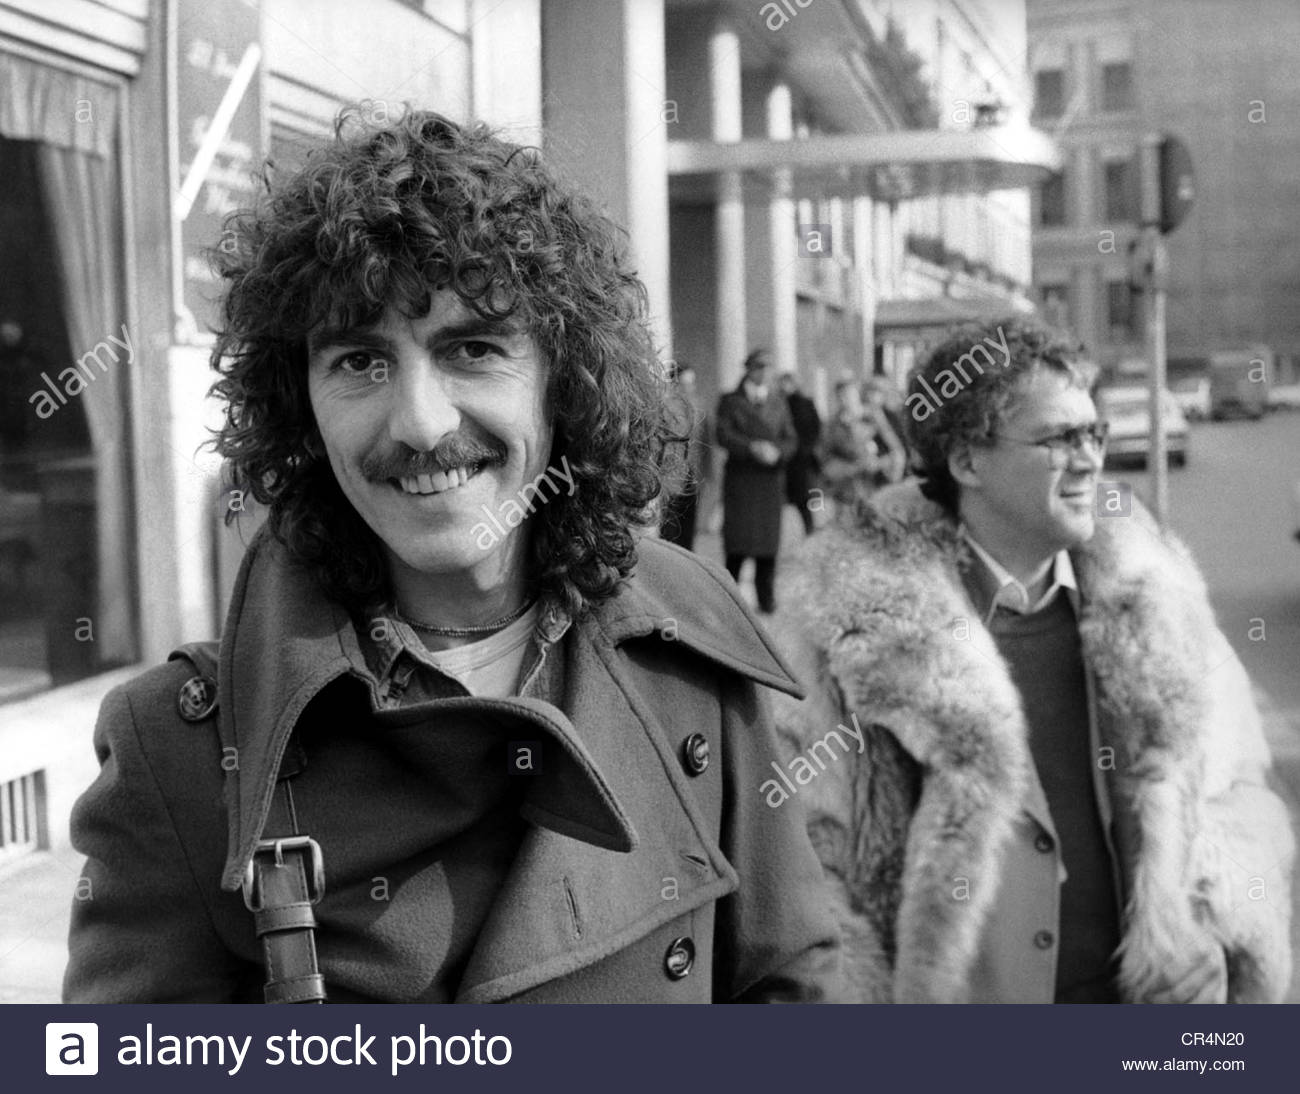 Harrison, George, 25.2.1943 - 29.11.2001, British musician and singer, half length, in front the the hotel Bayerischer - Stock Image